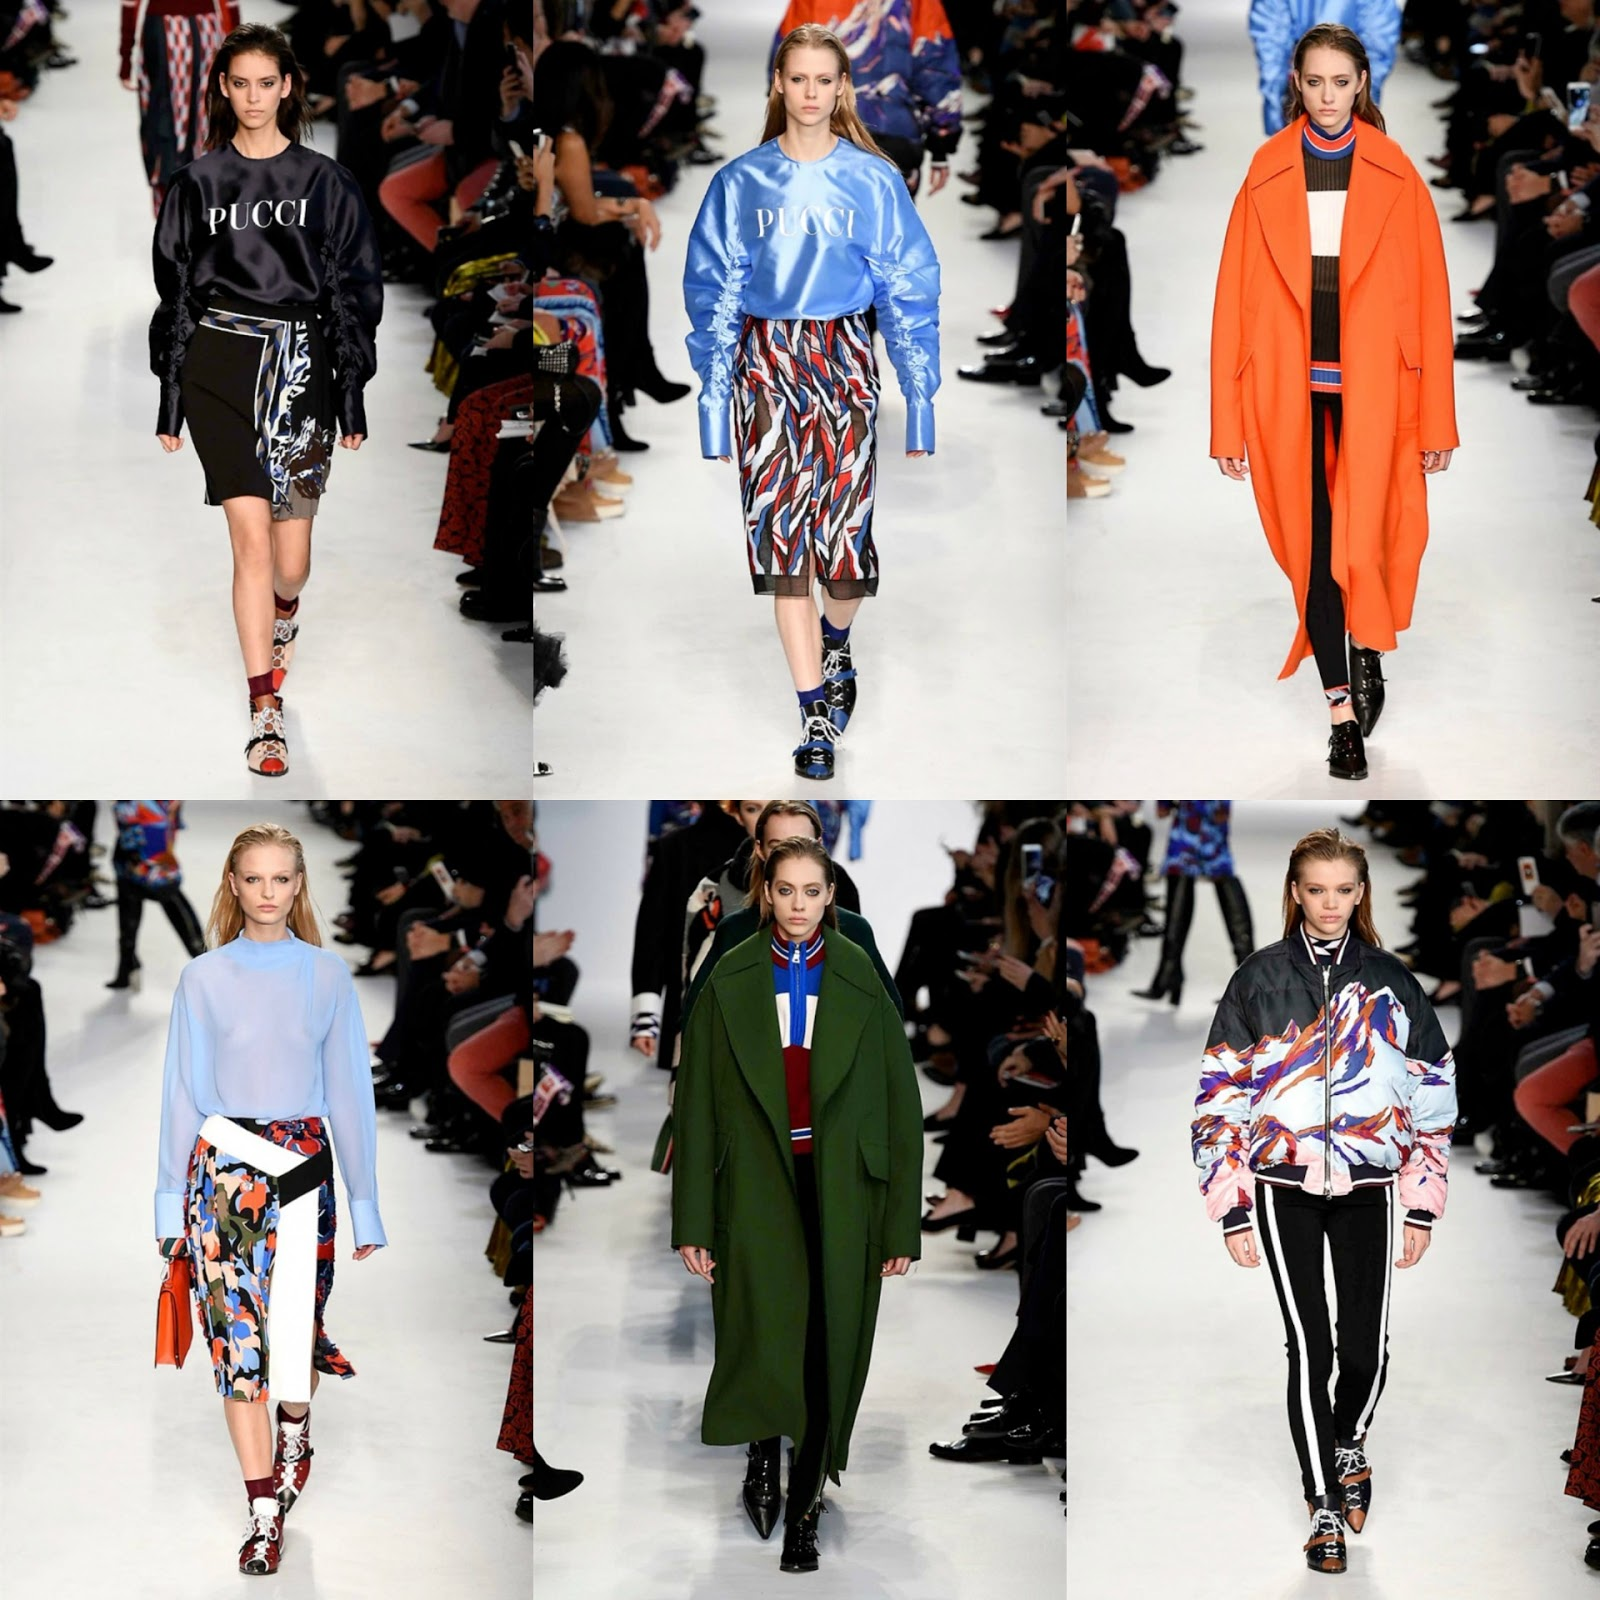 Eniwhere Fashion - sfilate - Milano Fashion Week - Emilio Pucci